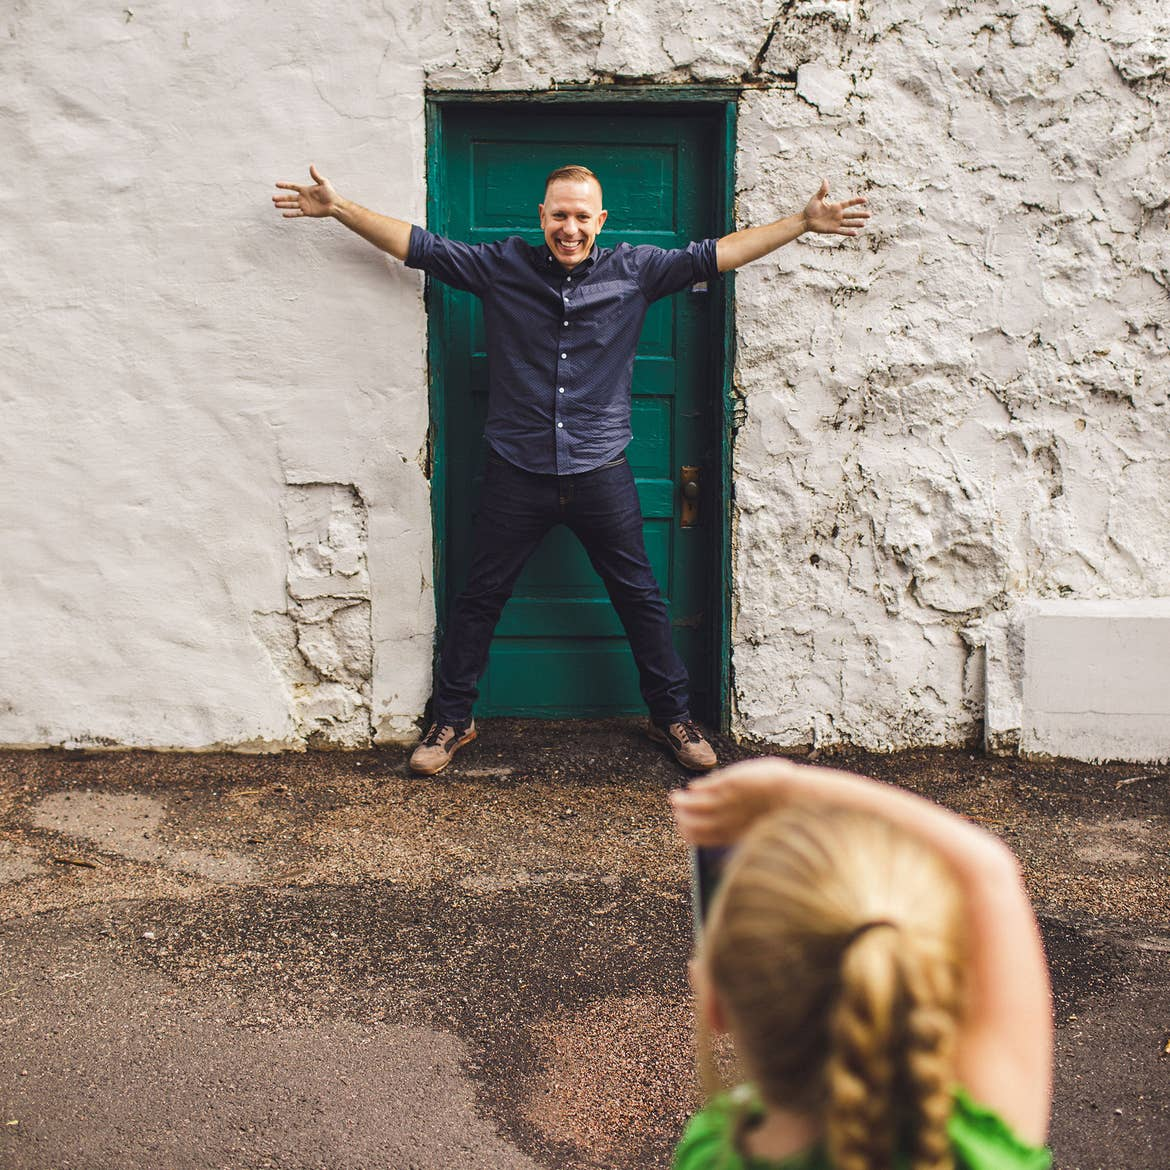 A father stands in front of a green door posing excitedly while his daughter takes his photograph.